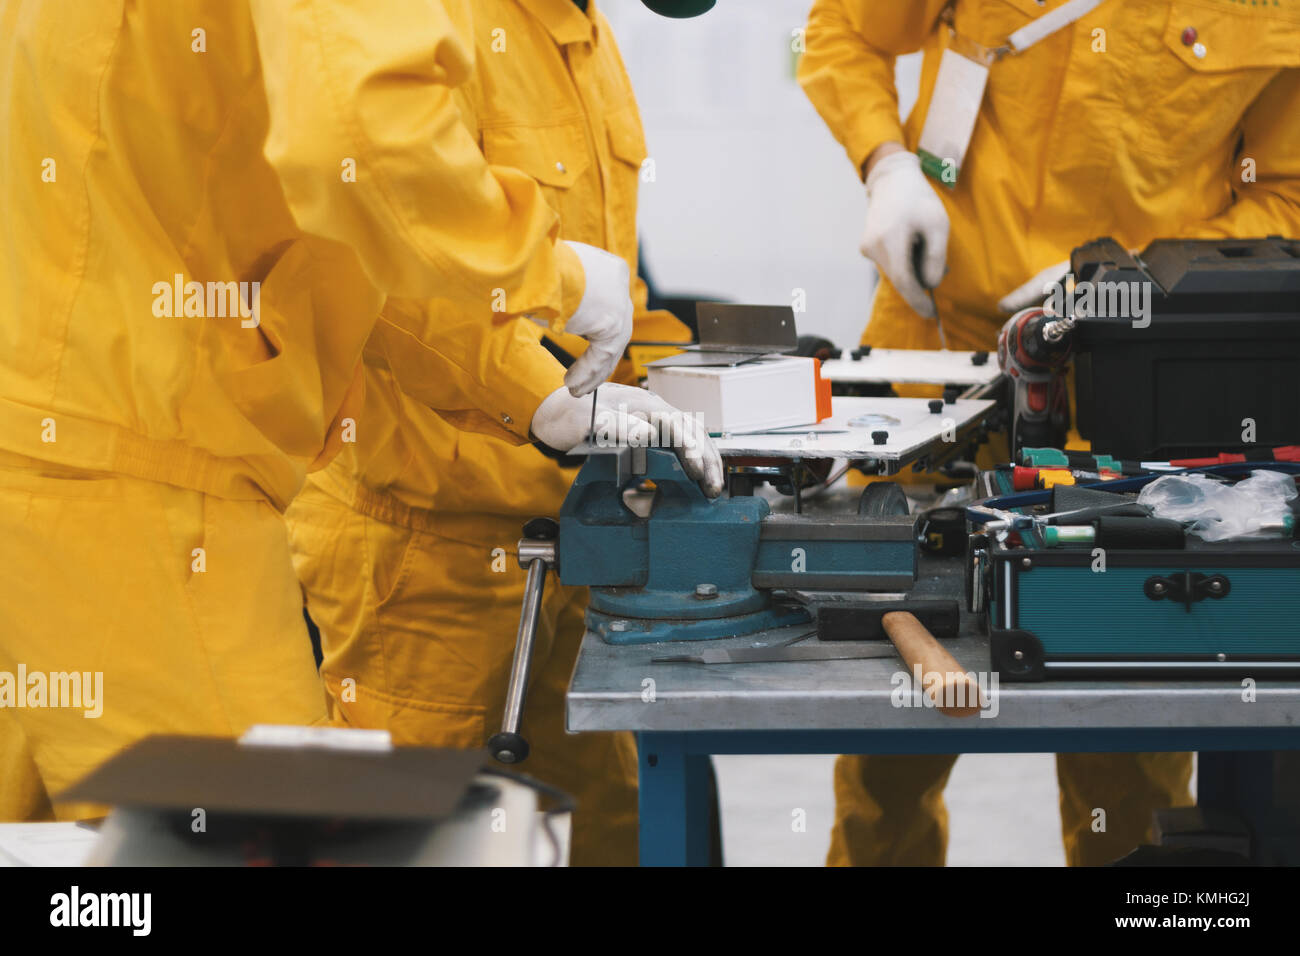 Engineers and workers in yellow overalls working in metal workshop - Stock Image